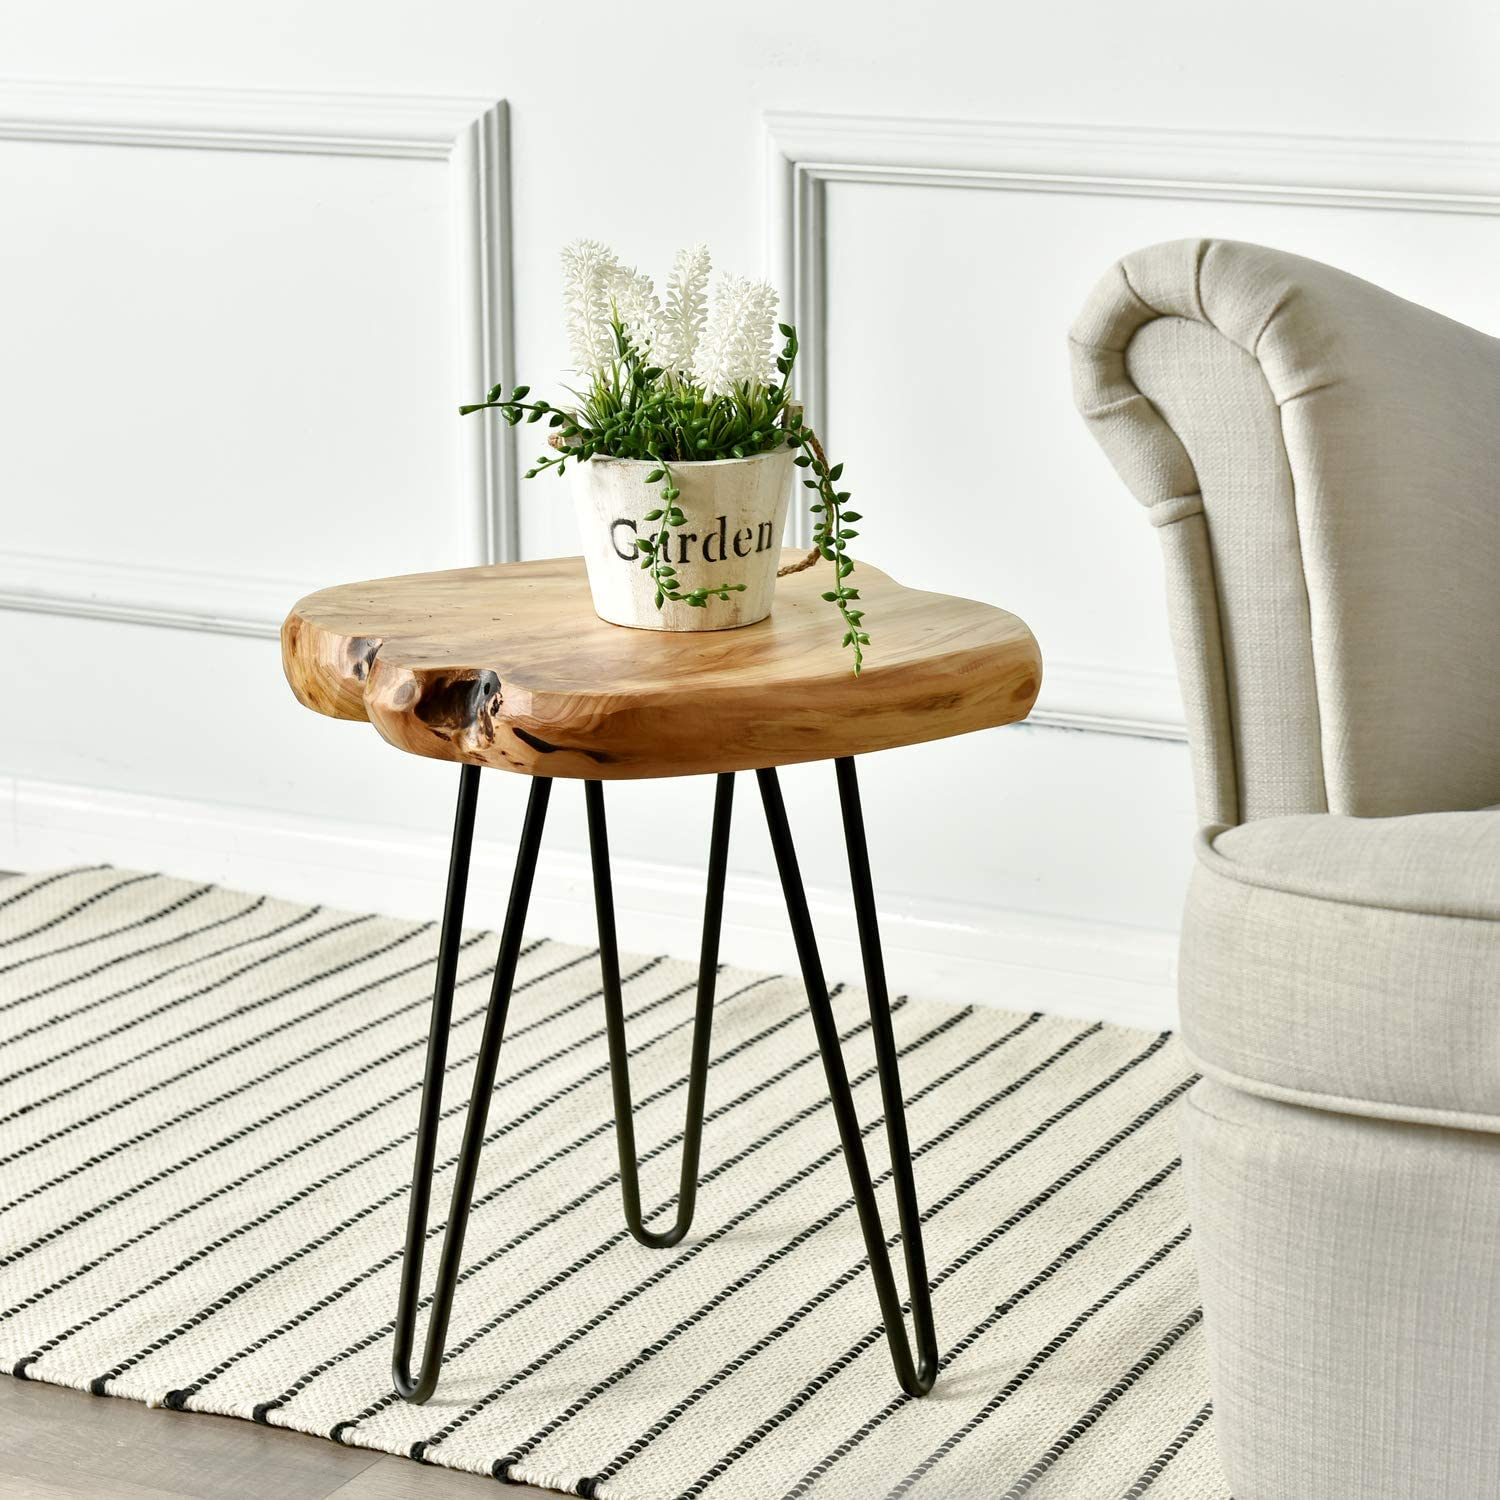 WELLAND Live Edge Side Table with Hairpin Legs, Natural Edge Side Table, Small Nightstand Wood, 15.5  Tall